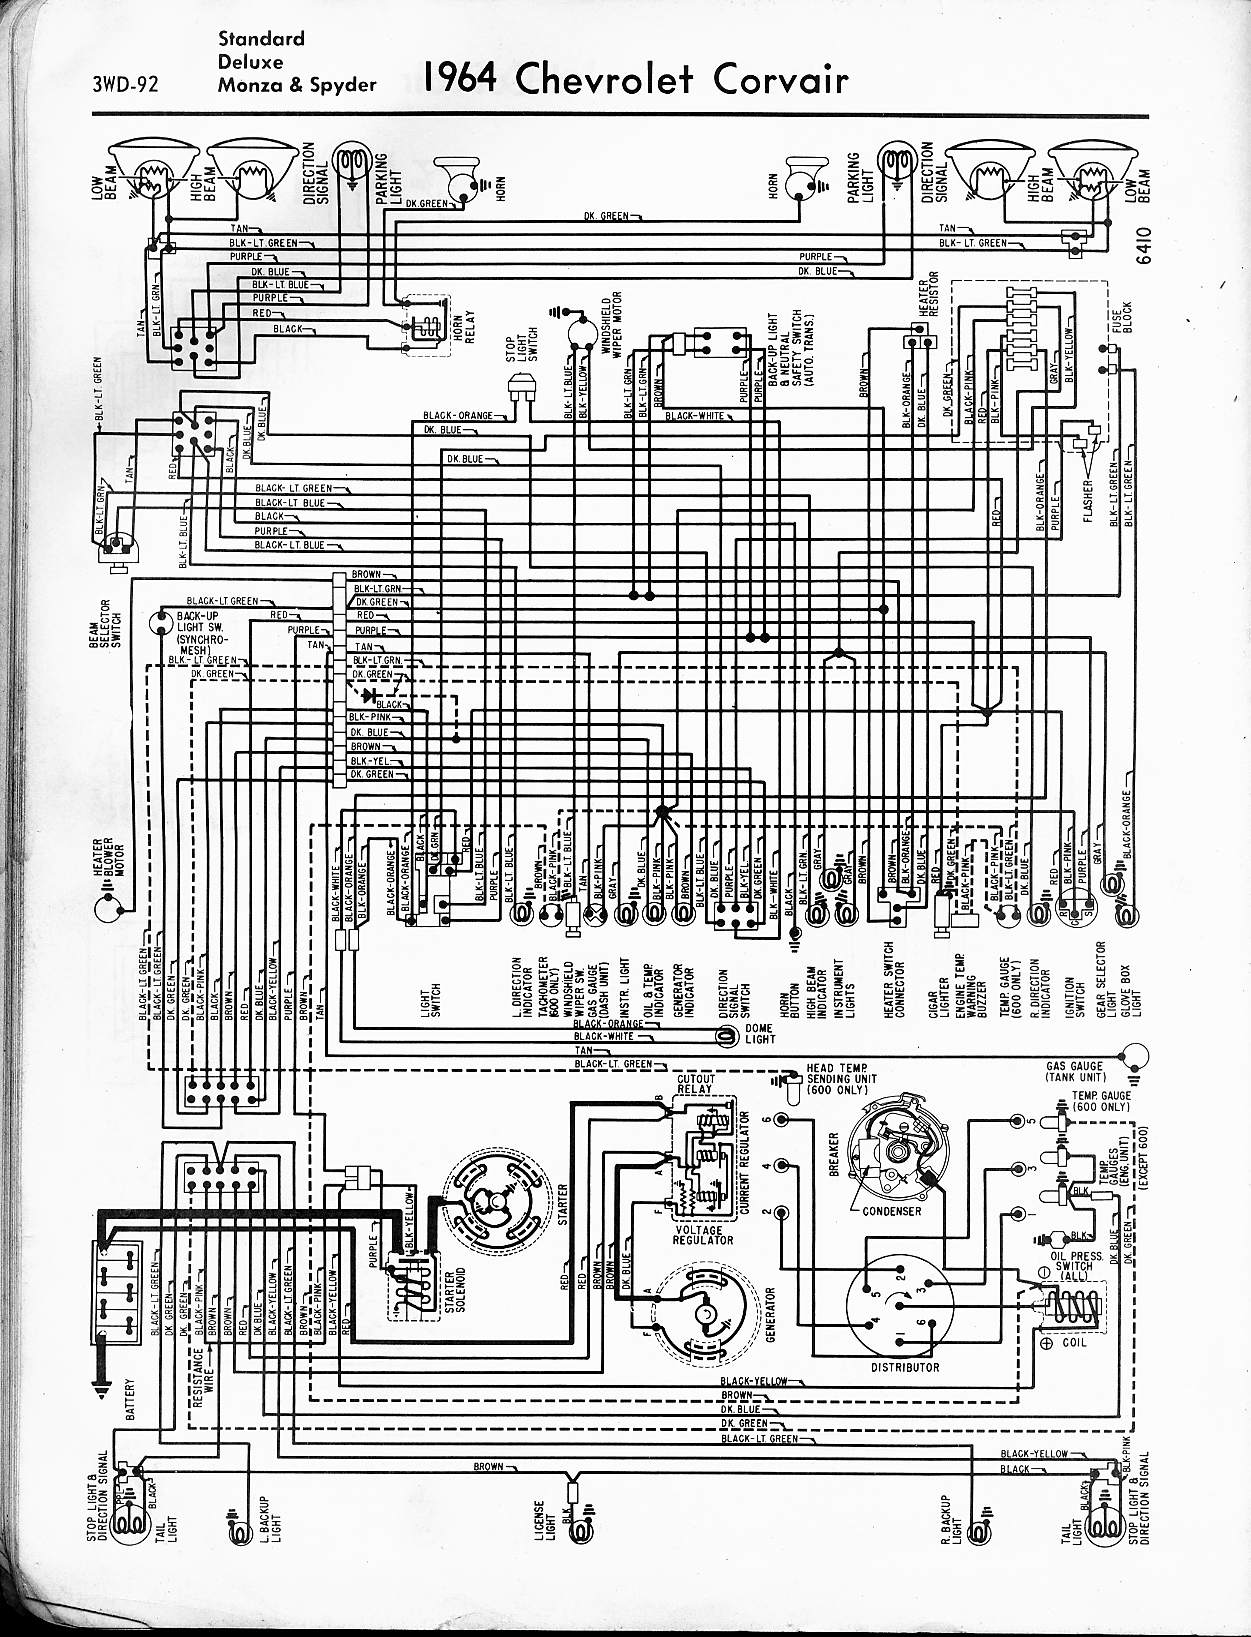 MWireChev64_3WD 092 57 65 chevy wiring diagrams 1963 corvair wiring diagram at bakdesigns.co